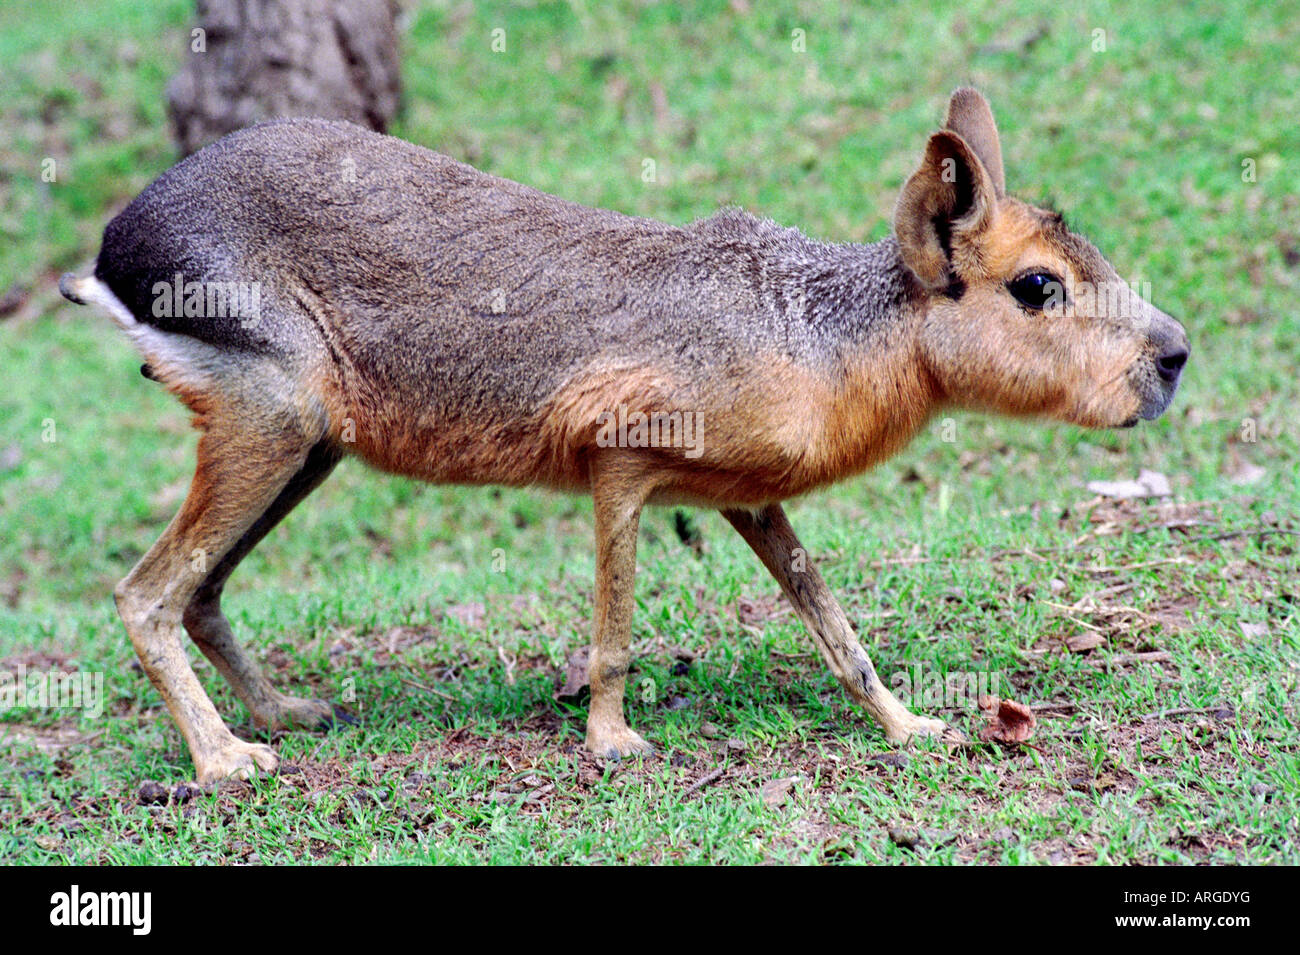 Patagonic Mara (Dolichotis patagonum) from Monte and Patagonia ecosystems in Argentina - Stock Image